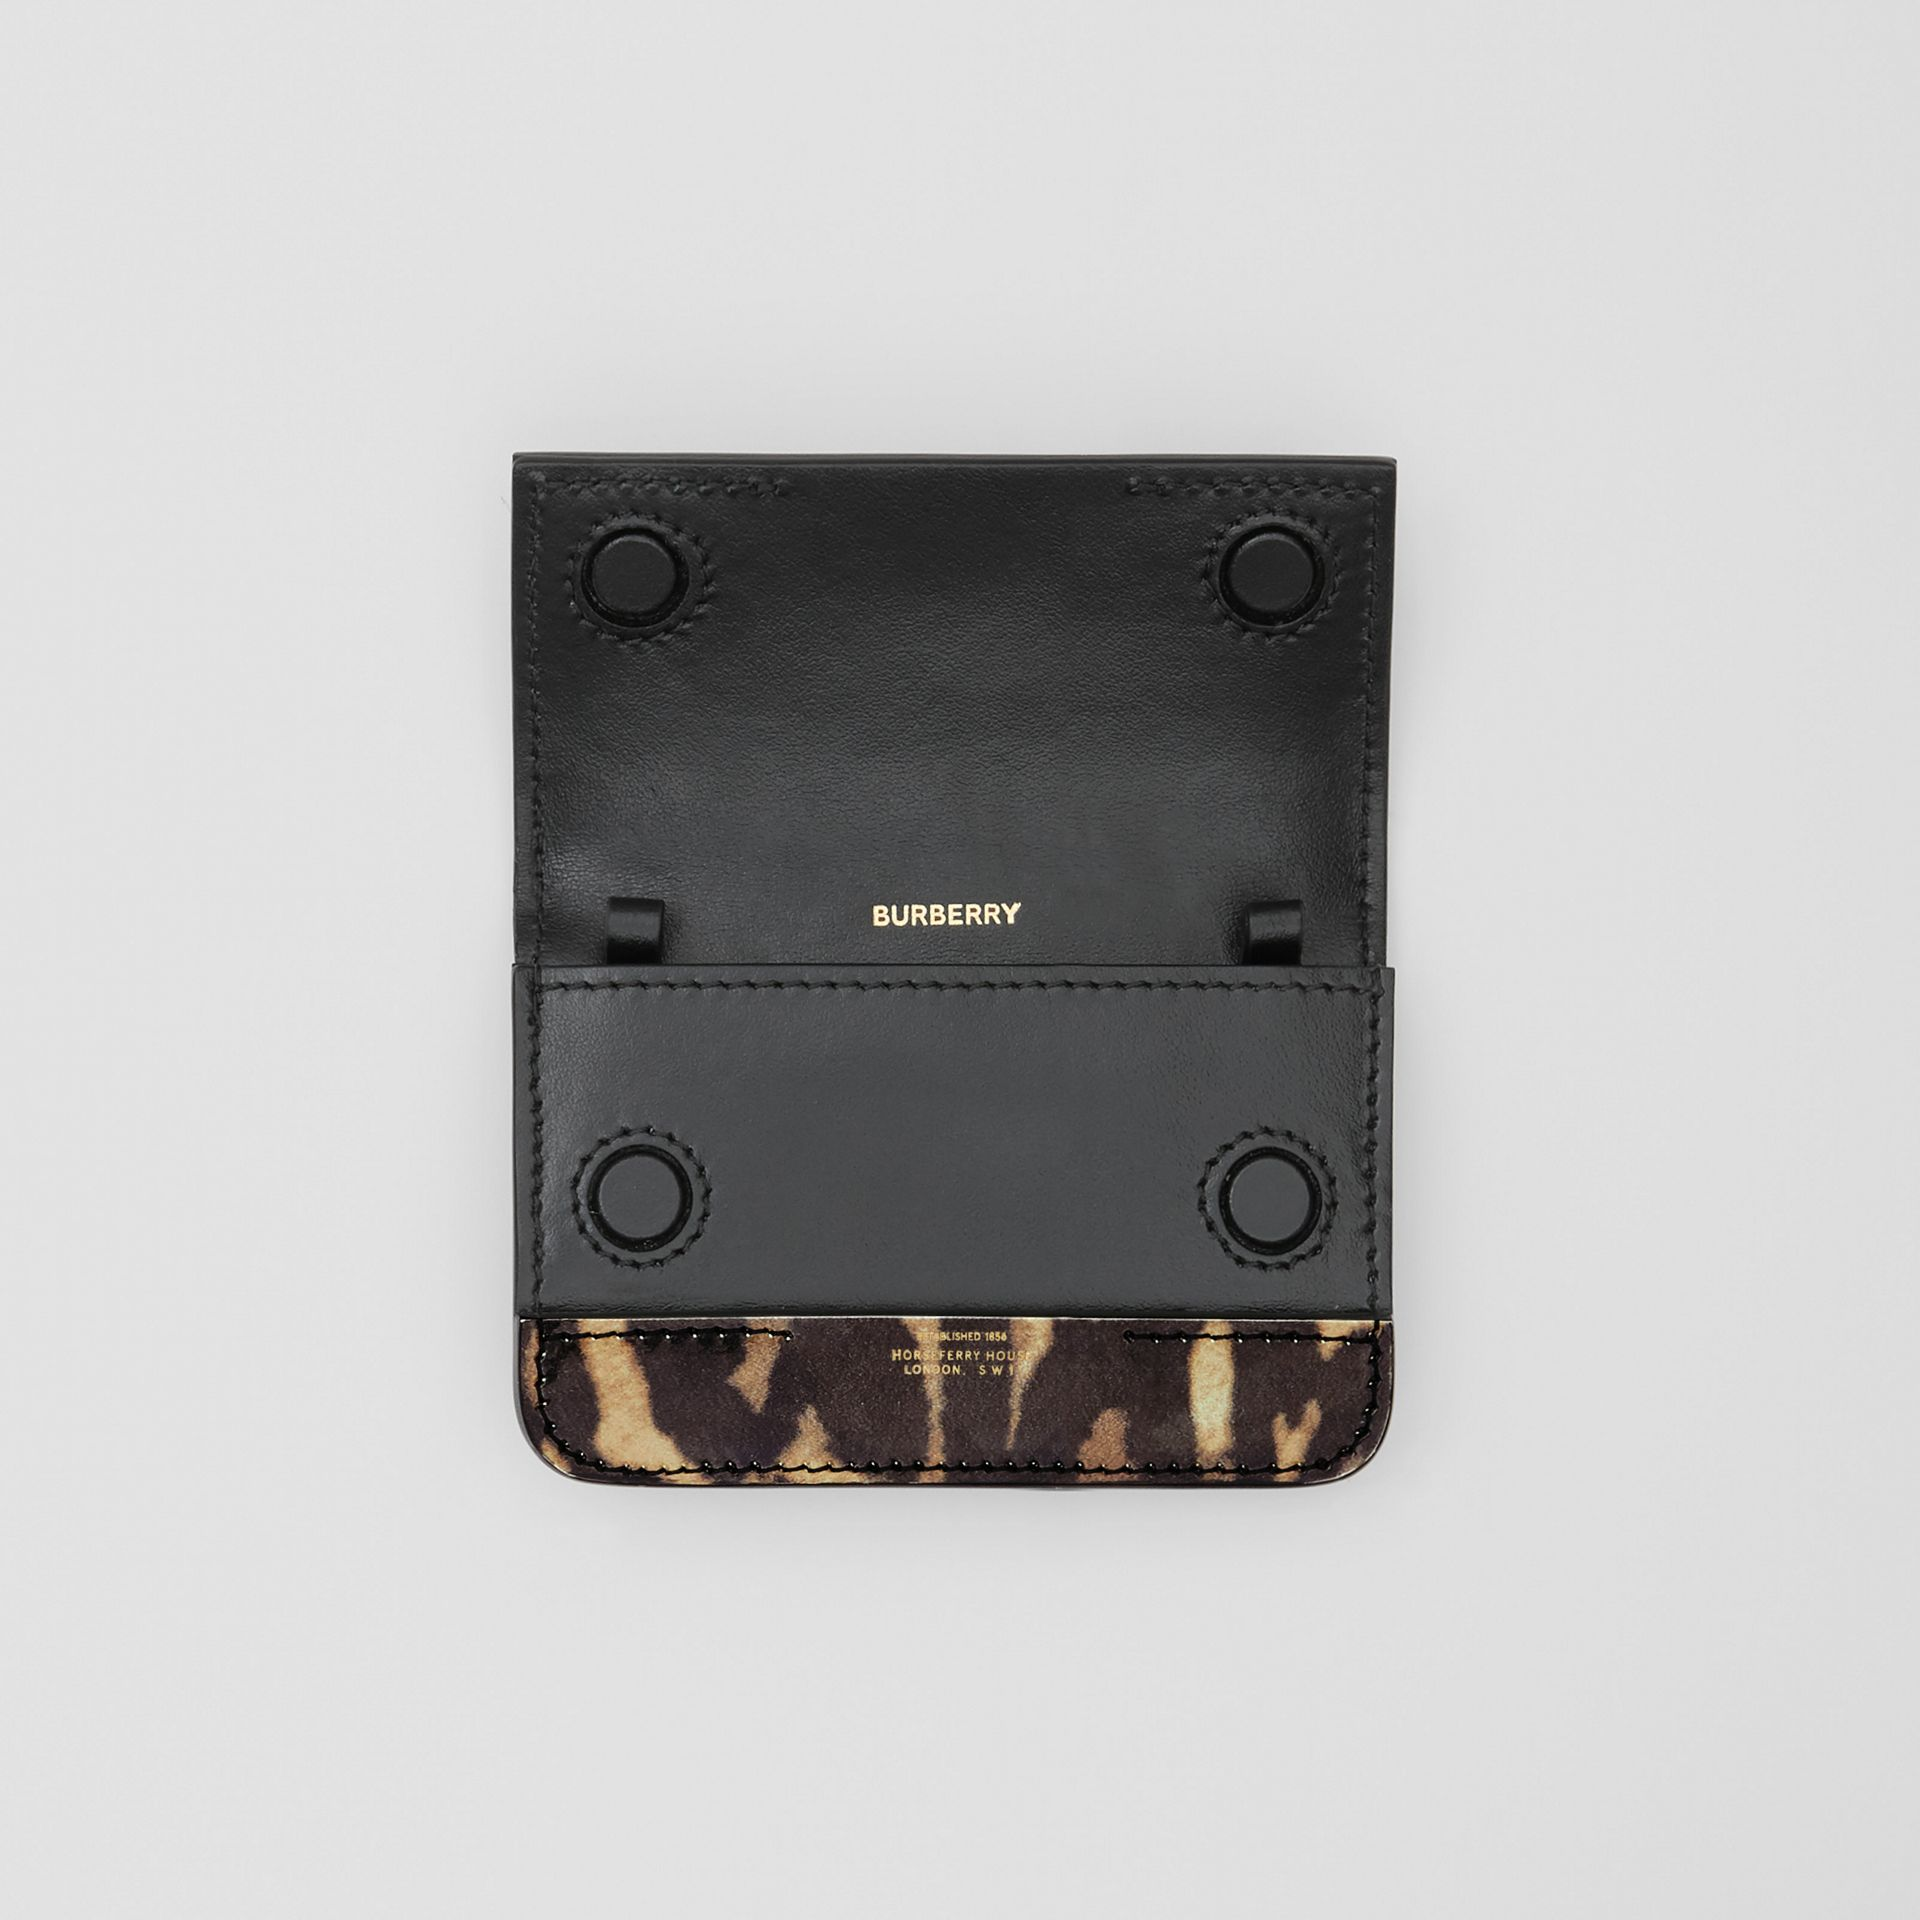 Leopard Print Leather Card Case with Chain Strap in Dark Mustard - Women | Burberry United States - gallery image 4